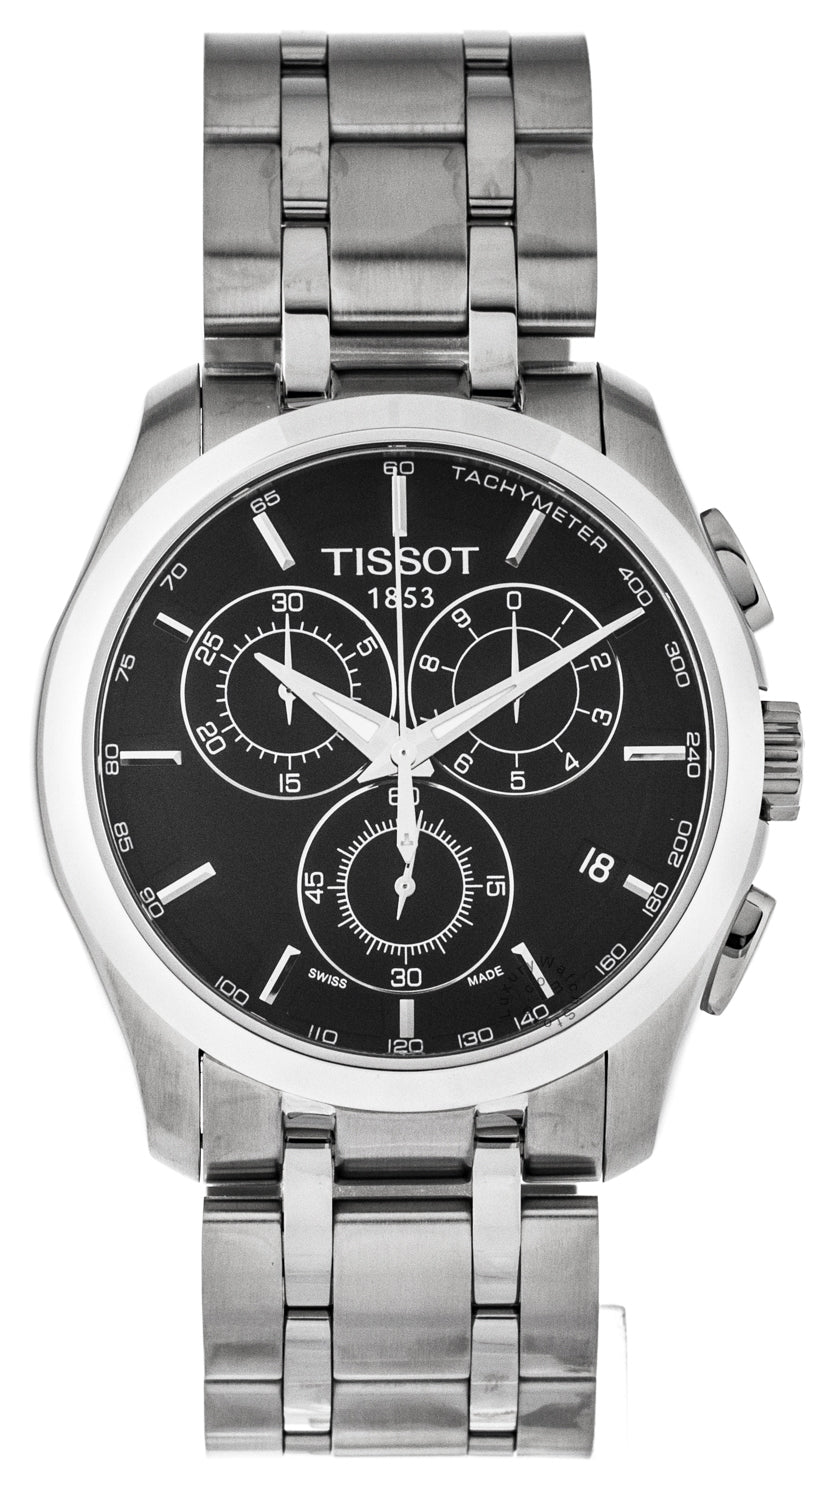 Tissot T-Trend Couturier Chronograph Steel Men's Watch T0356171105100